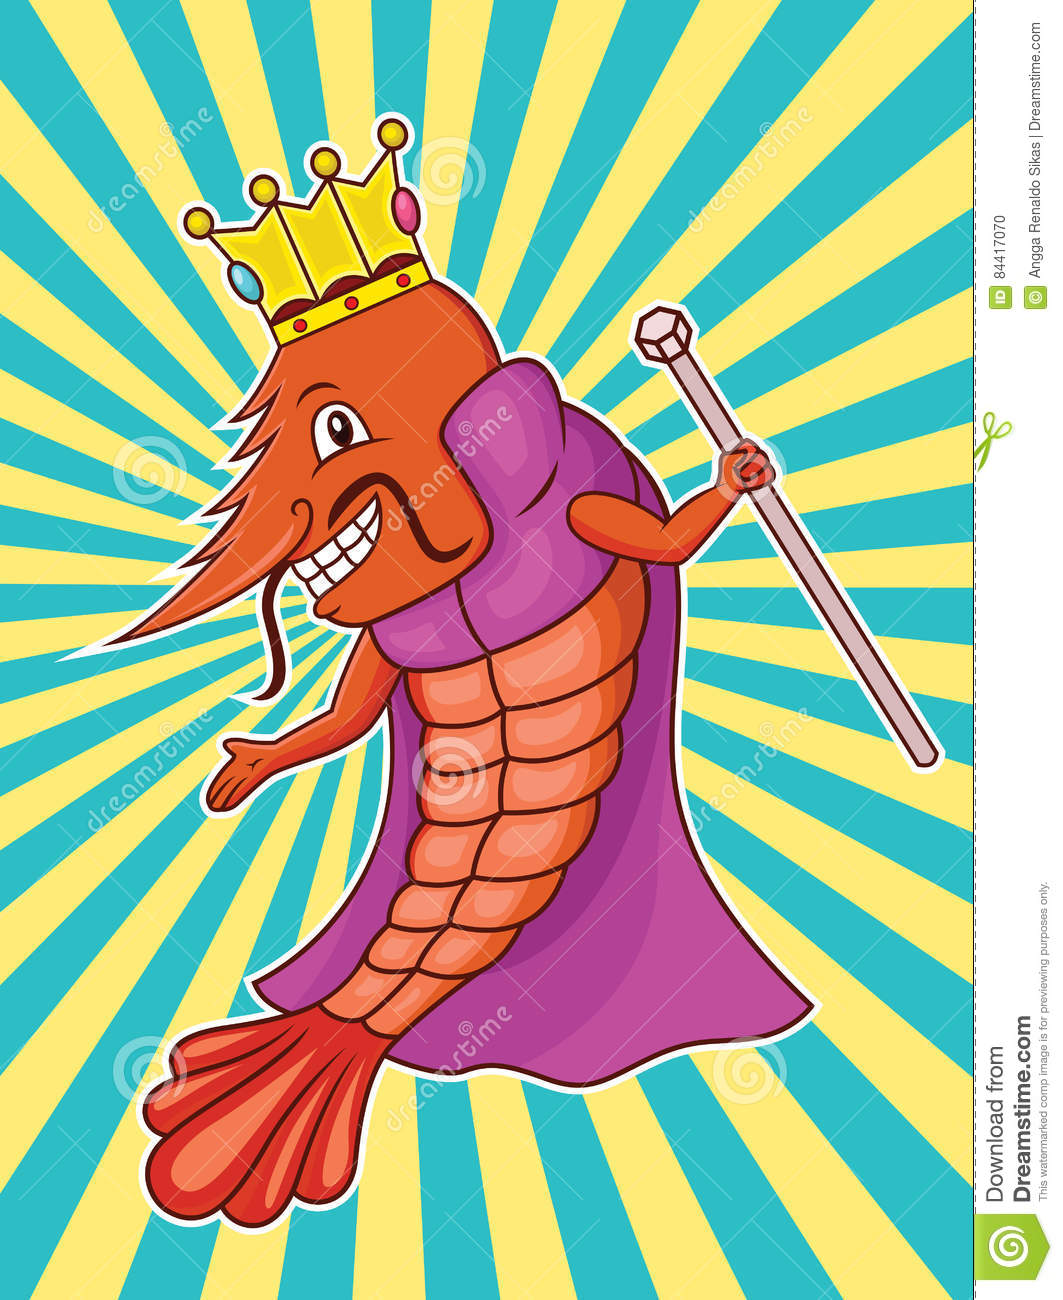 Scepter Cartoon Stock Illustrations 724 Scepter Cartoon Stock Illustrations Vectors Clipart Dreamstime Candy pink crown and scepter. scepter cartoon stock illustrations 724 scepter cartoon stock illustrations vectors clipart dreamstime